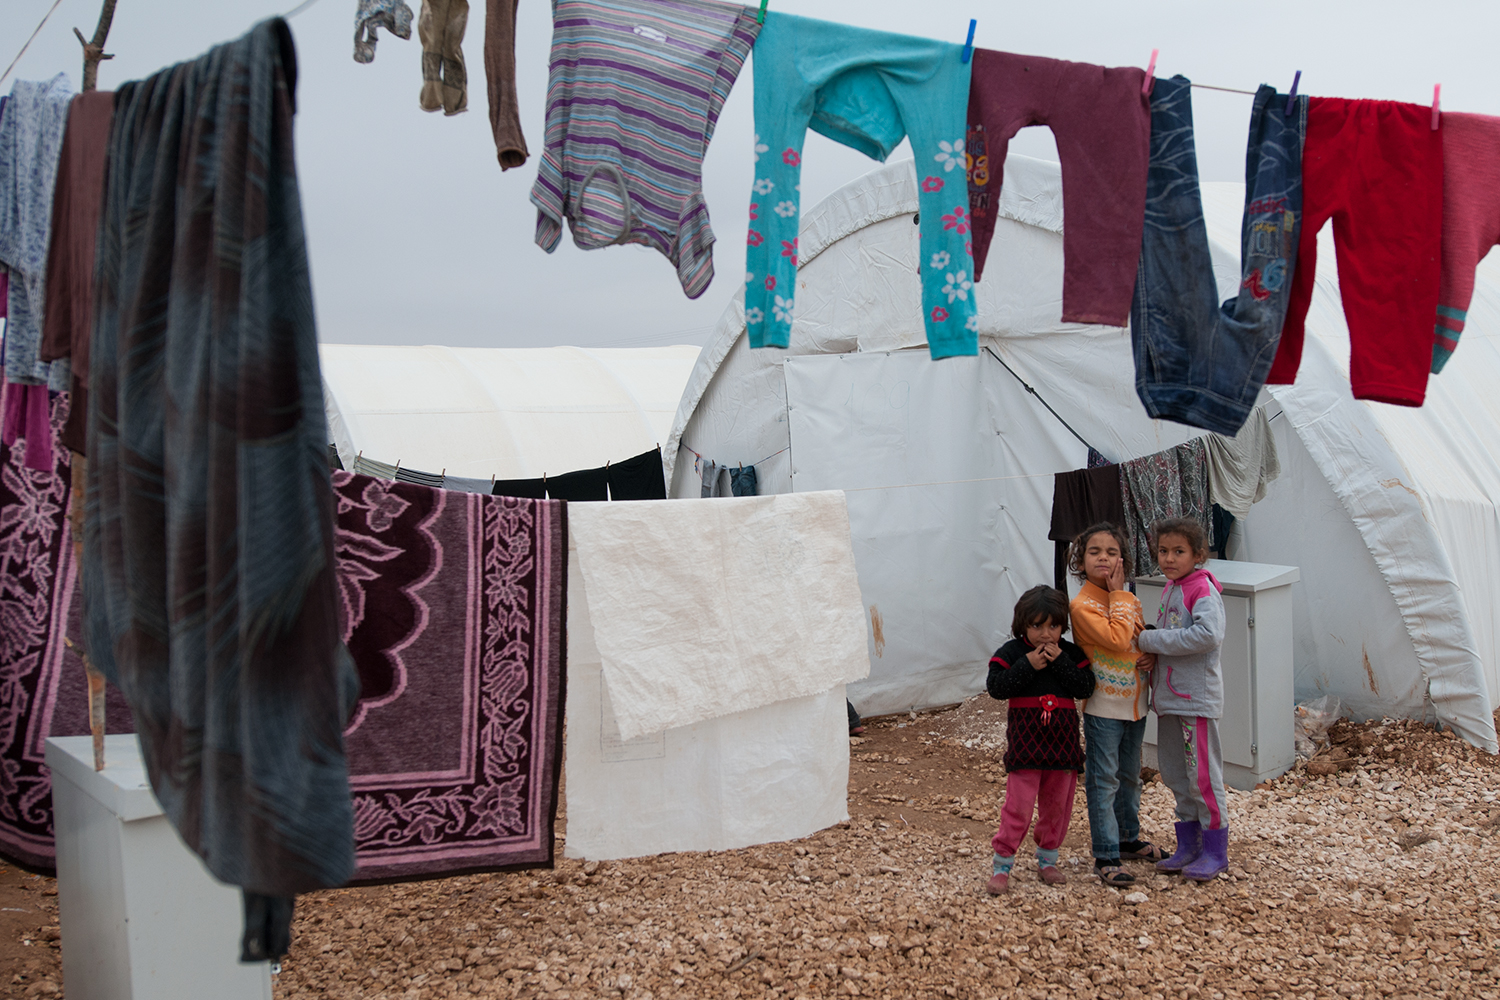 Syrian children in a refugee camp financed and managed by the Turkish government